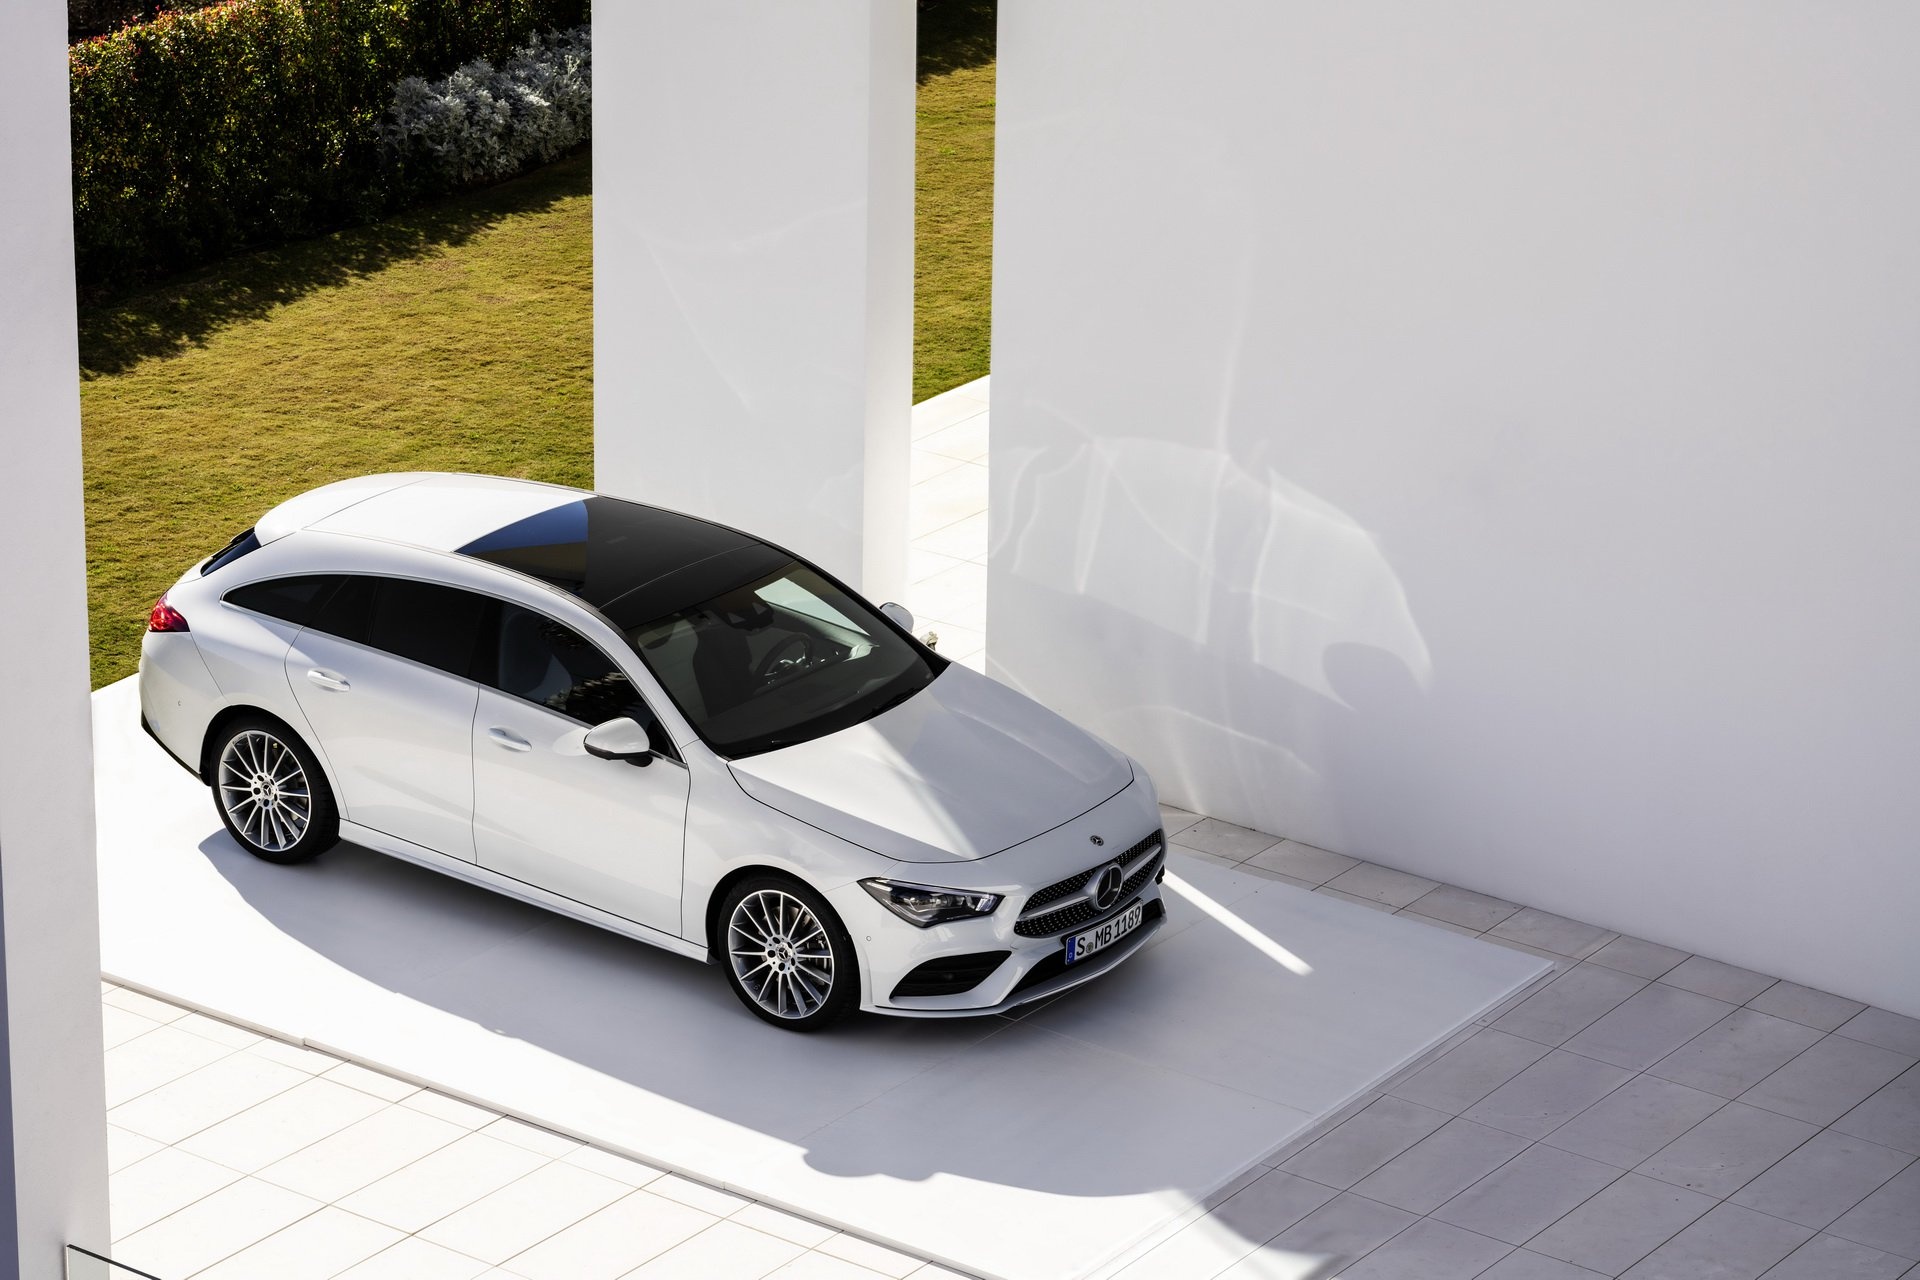 2019-mercedes-cla-shooting-brake-unveiled-31.jpg